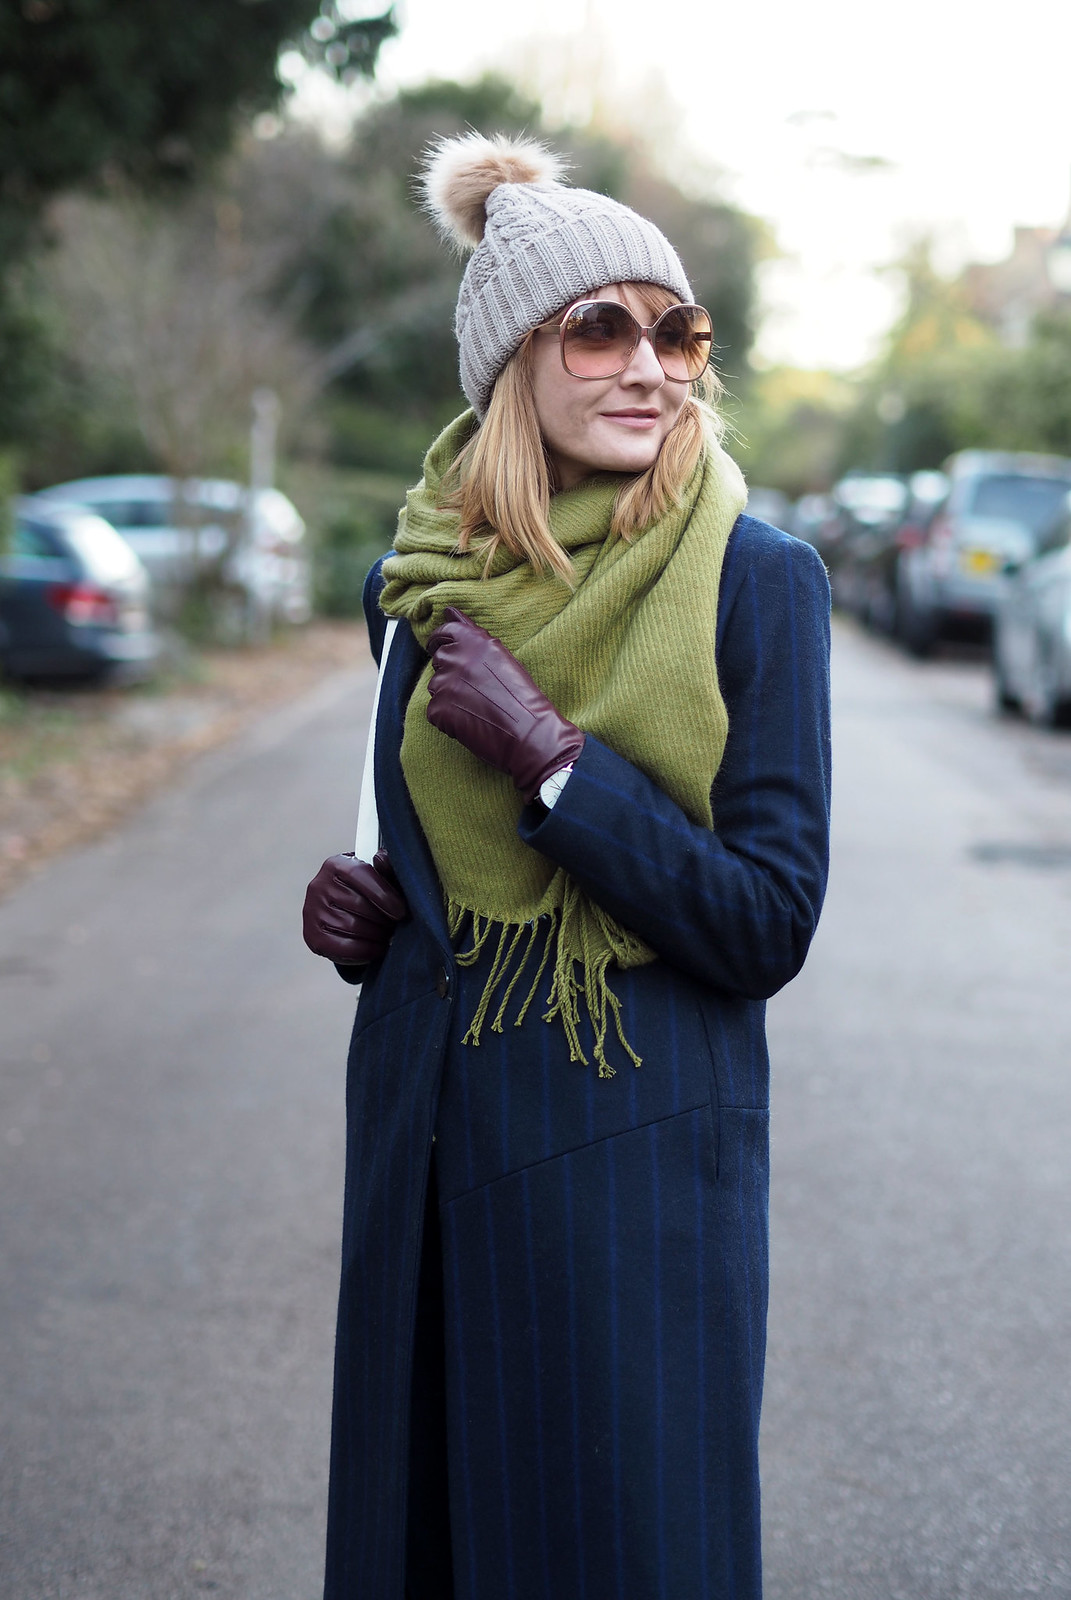 Smart cold weather layered outfit \ navy pinstripe wool coat \ moss green wool scarf \ bobble hat \ white backpack and Adidas Stan Smiths \ deep hem straight leg jeans | Not Dressed As Lamb, over 40 style